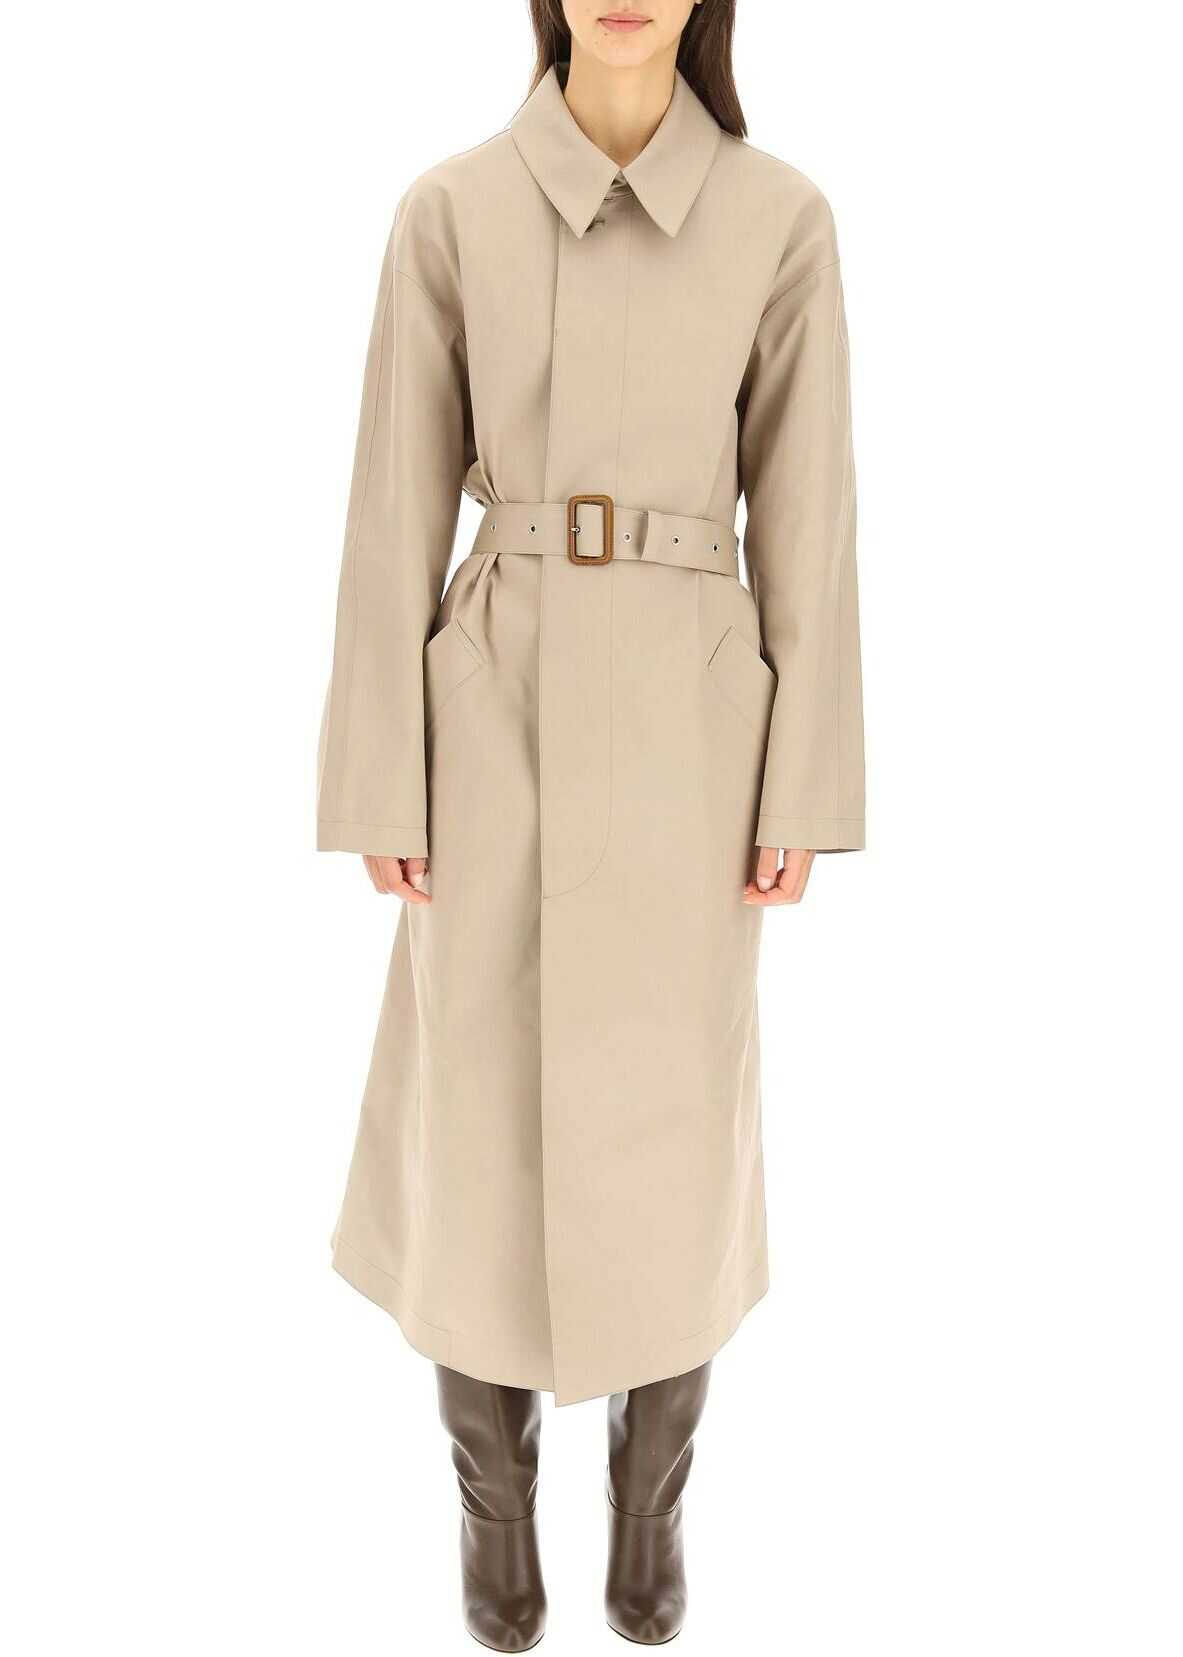 A.P.C. A.p.c. Balt Trench Coat COERZ F01465 TAUPE image0